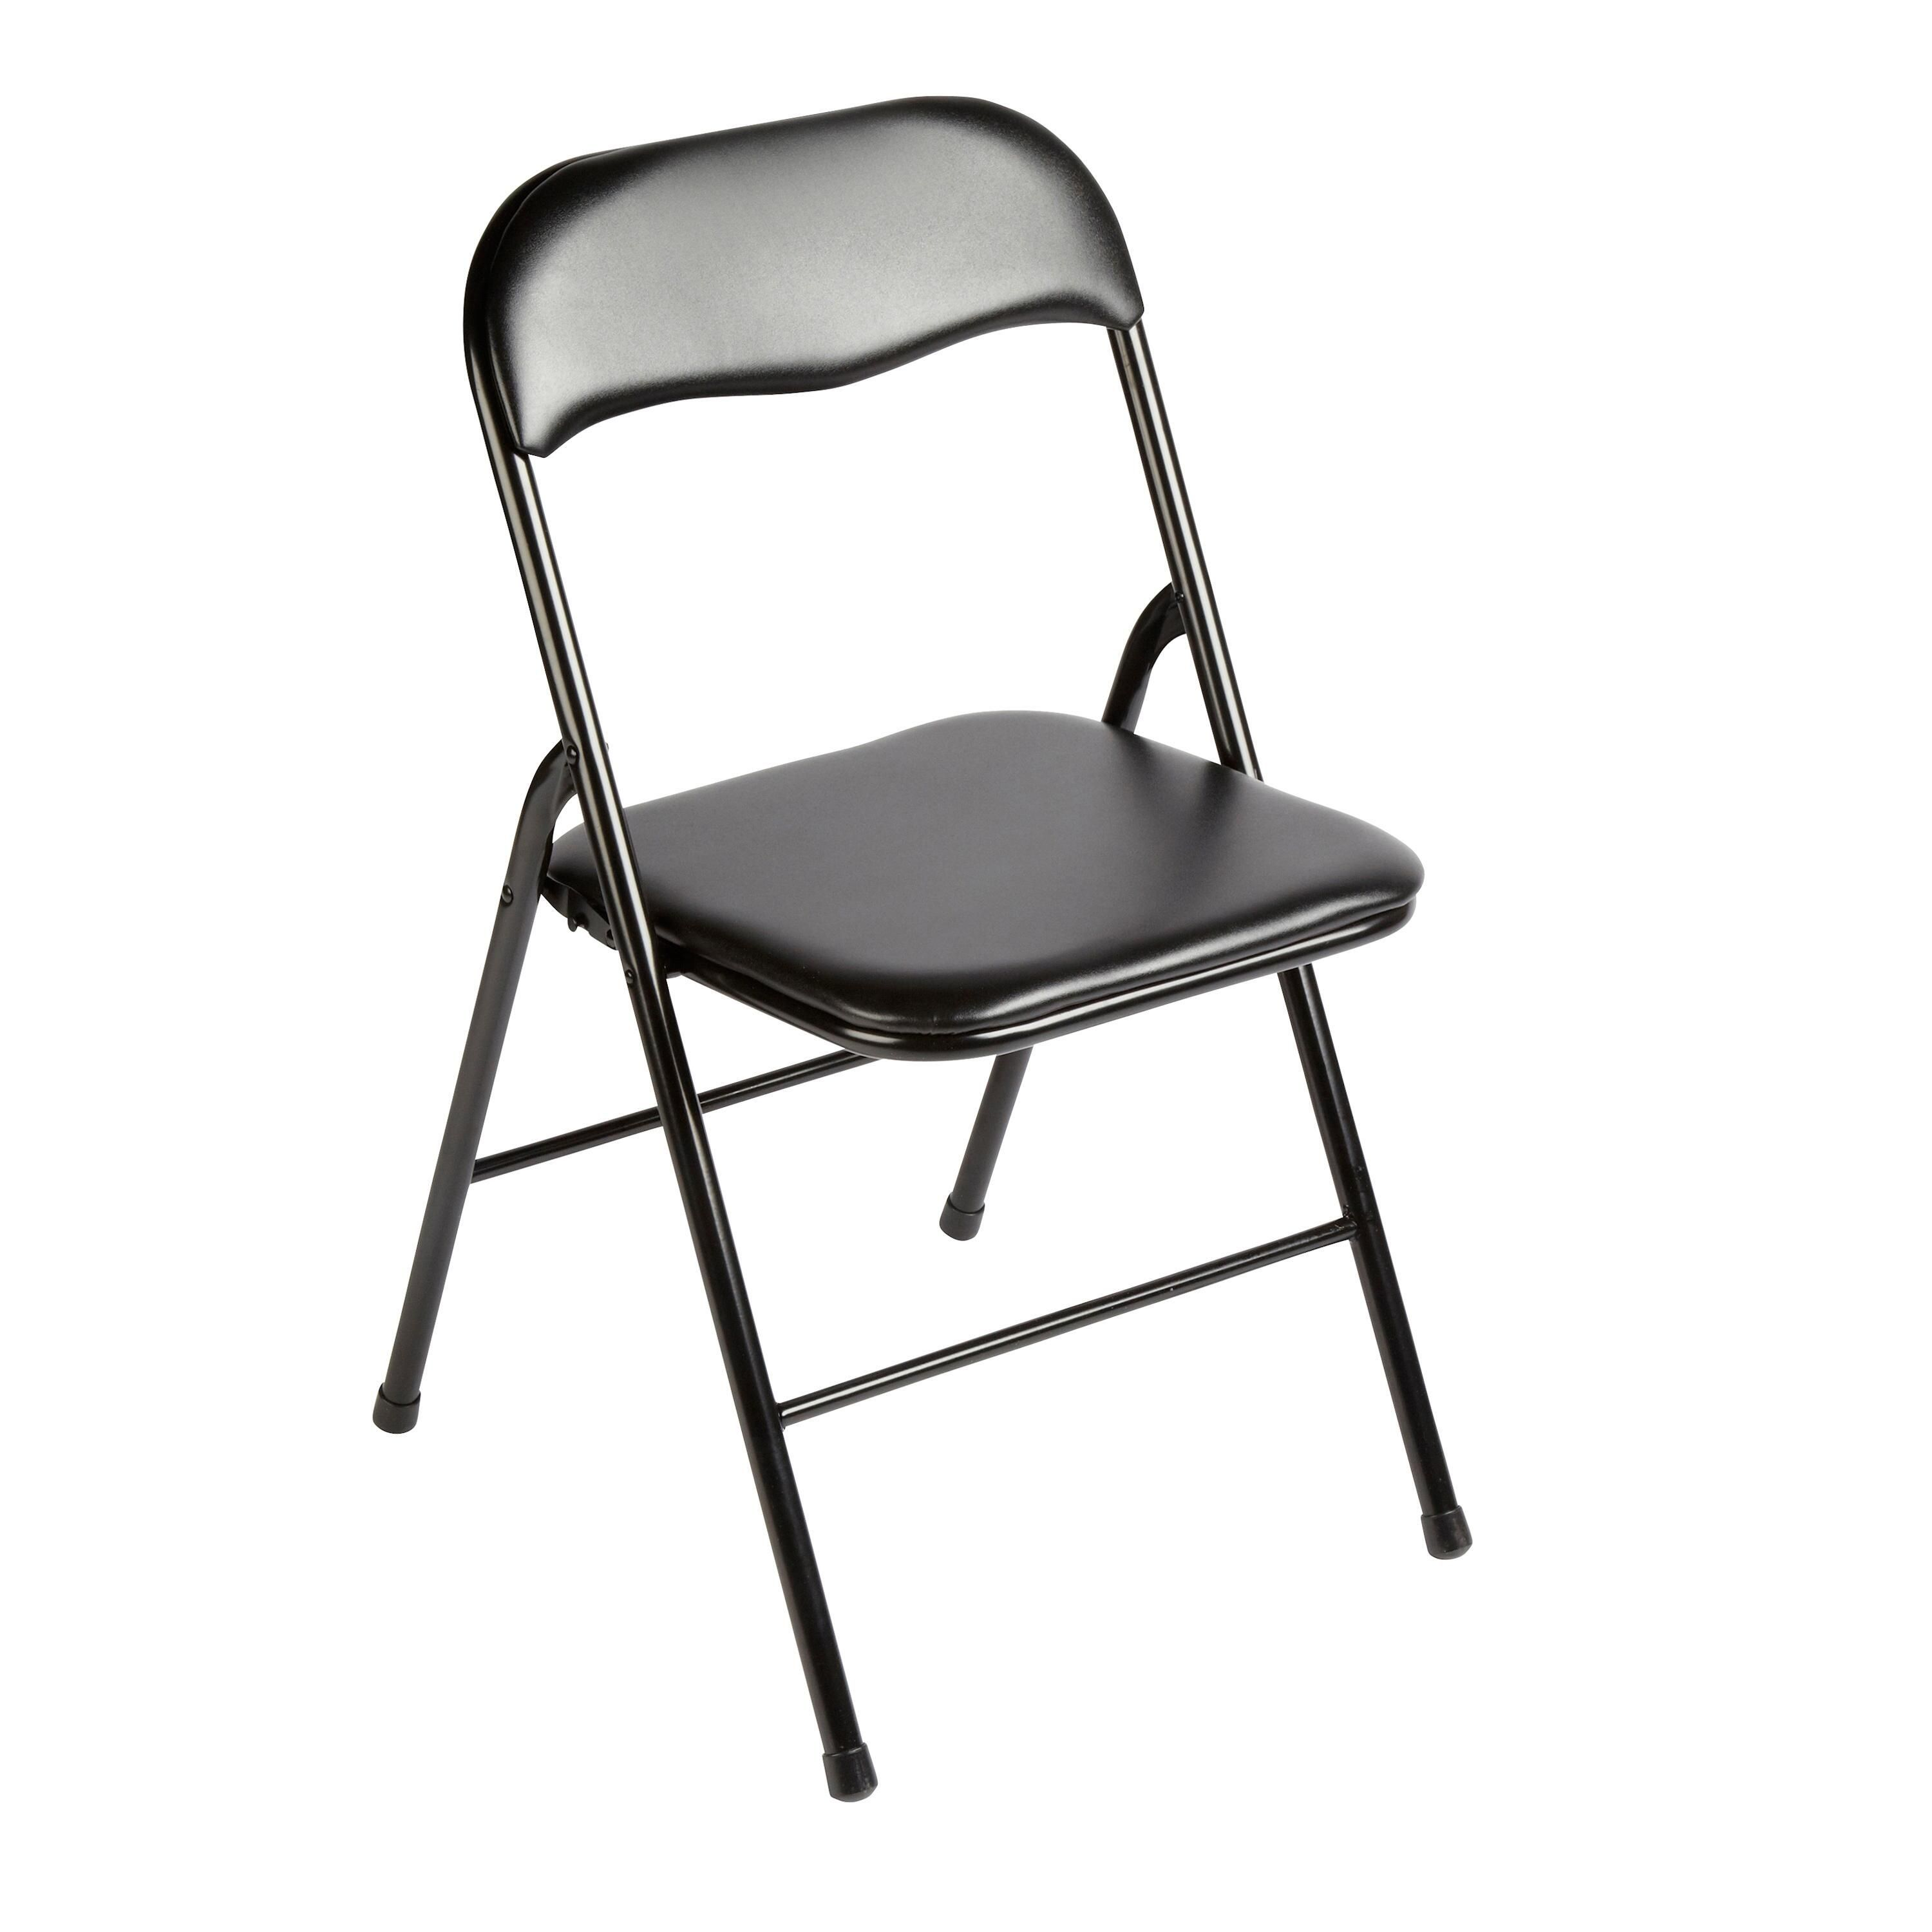 Padded Folding Chrome Metal Chair Folding Padded Chair With Images Metal Folding Chairs Folding Chair Card Table And Chairs